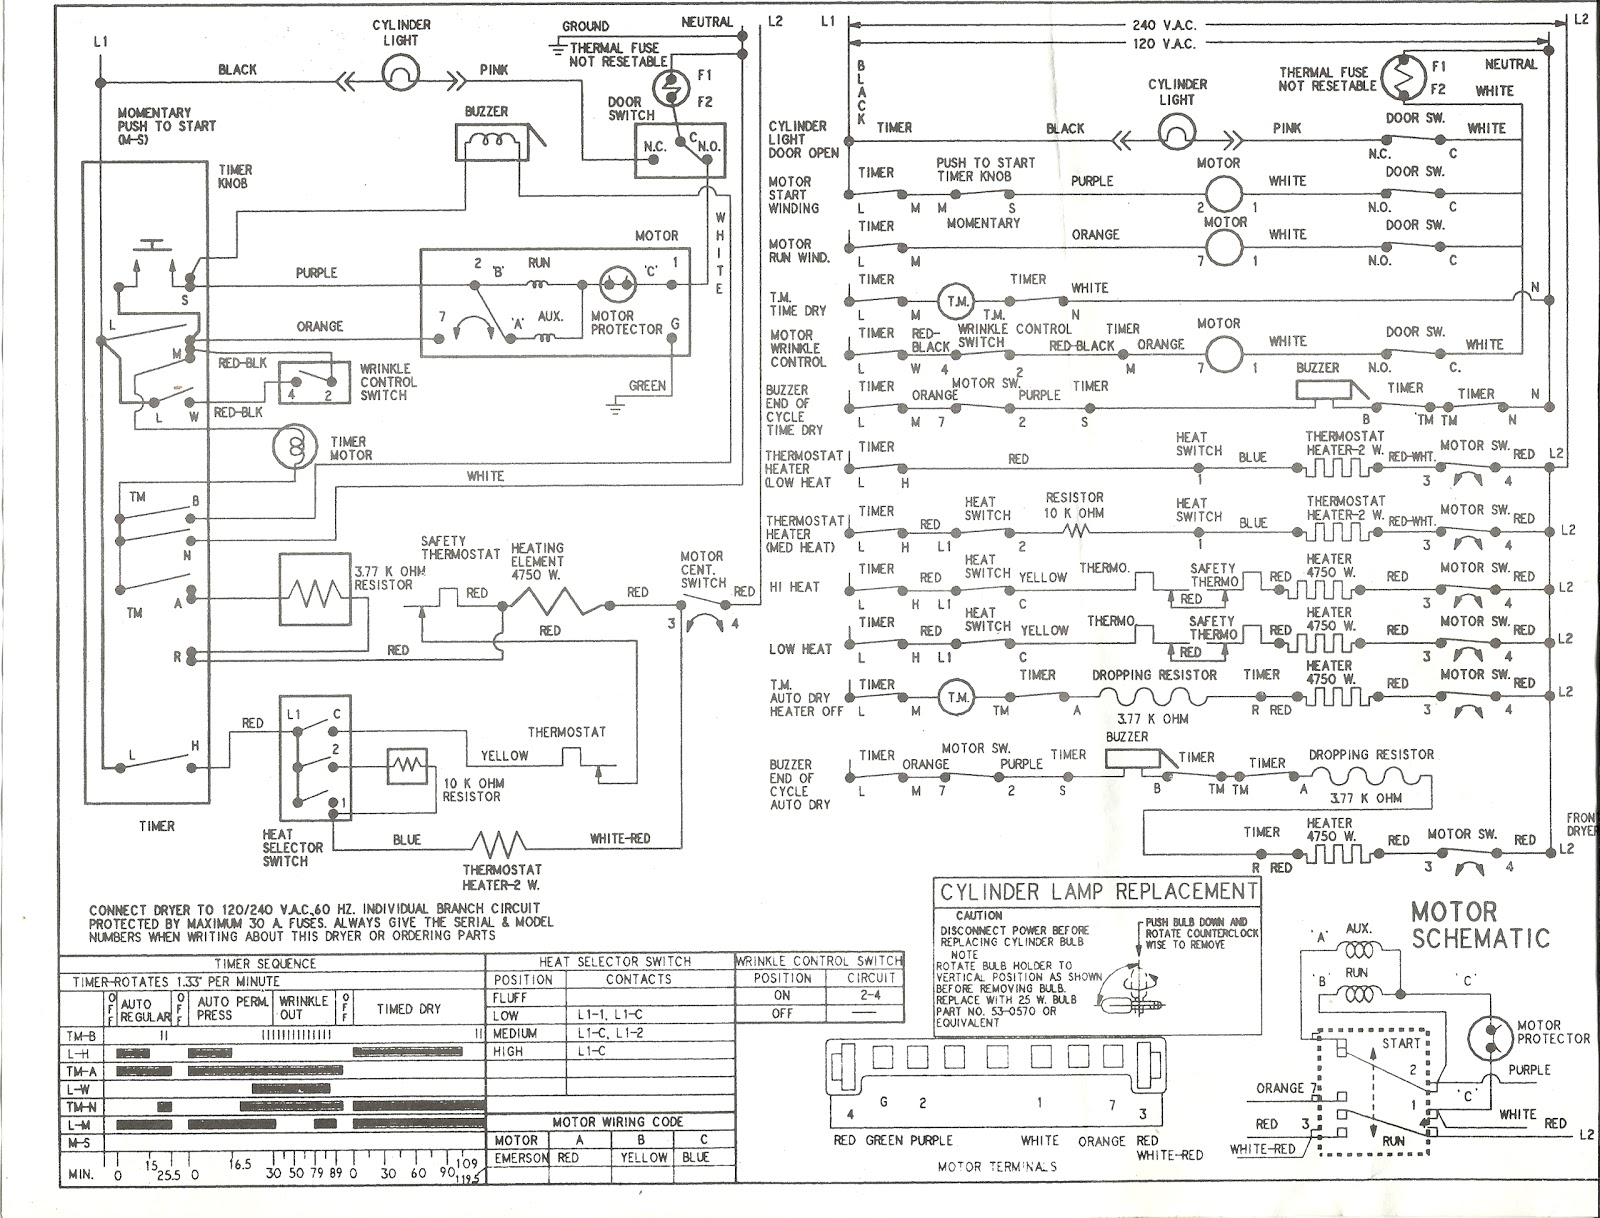 scan0001 dryer wiring diagram haier dryer wiring diagram \u2022 wiring diagrams sears kenmore washer model 110 wiring diagram at crackthecode.co